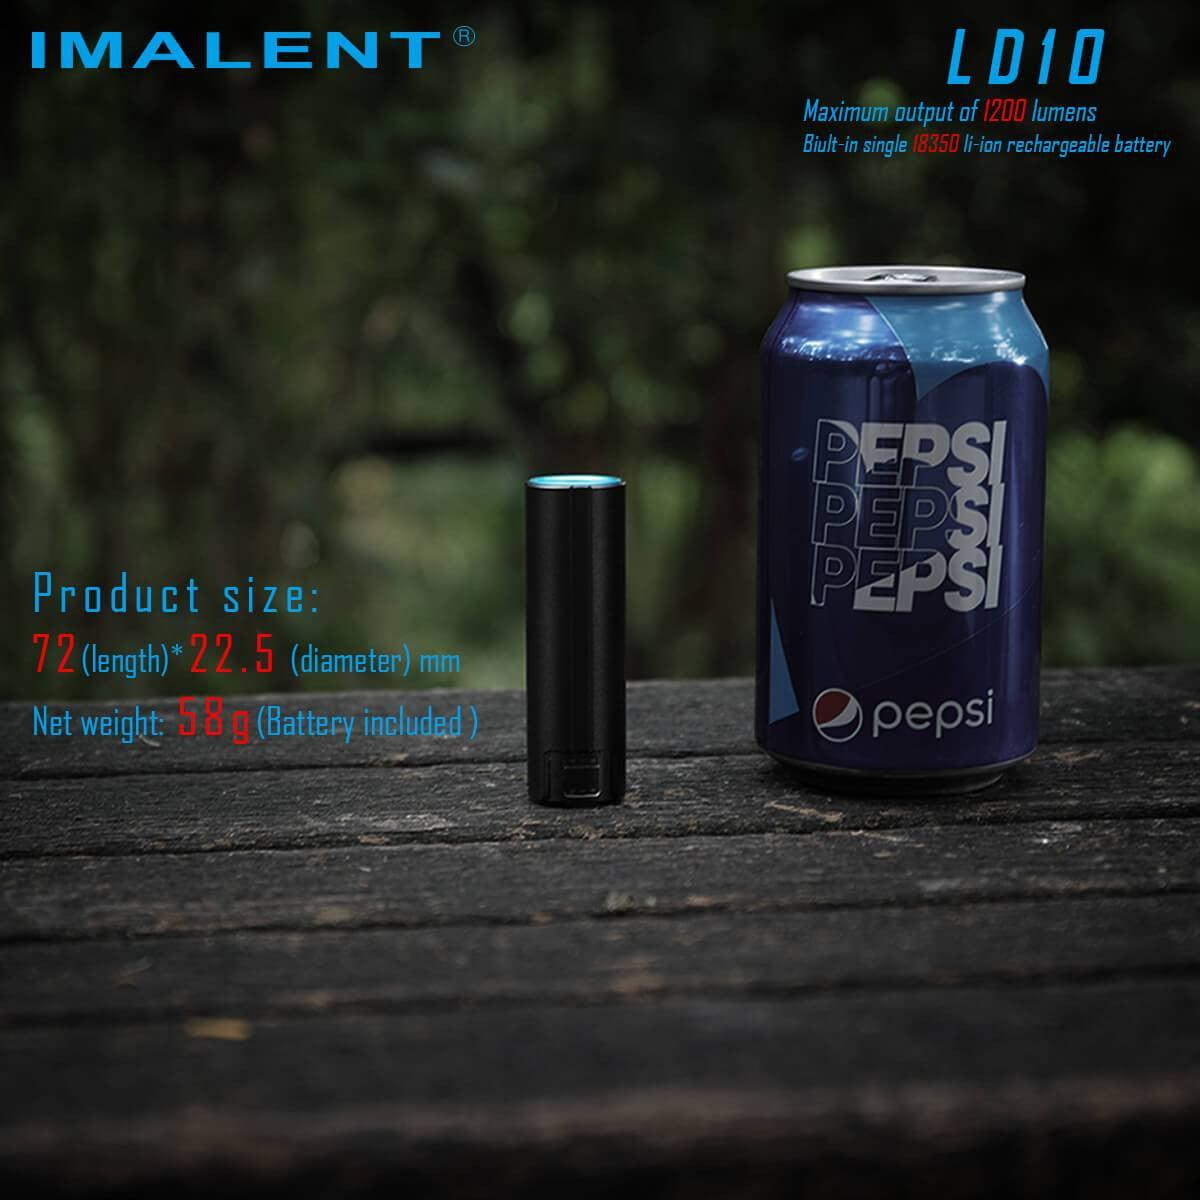 imalentstore,LD10 LED  FLASHLIGHT,imalentstore,D-series Flashlights